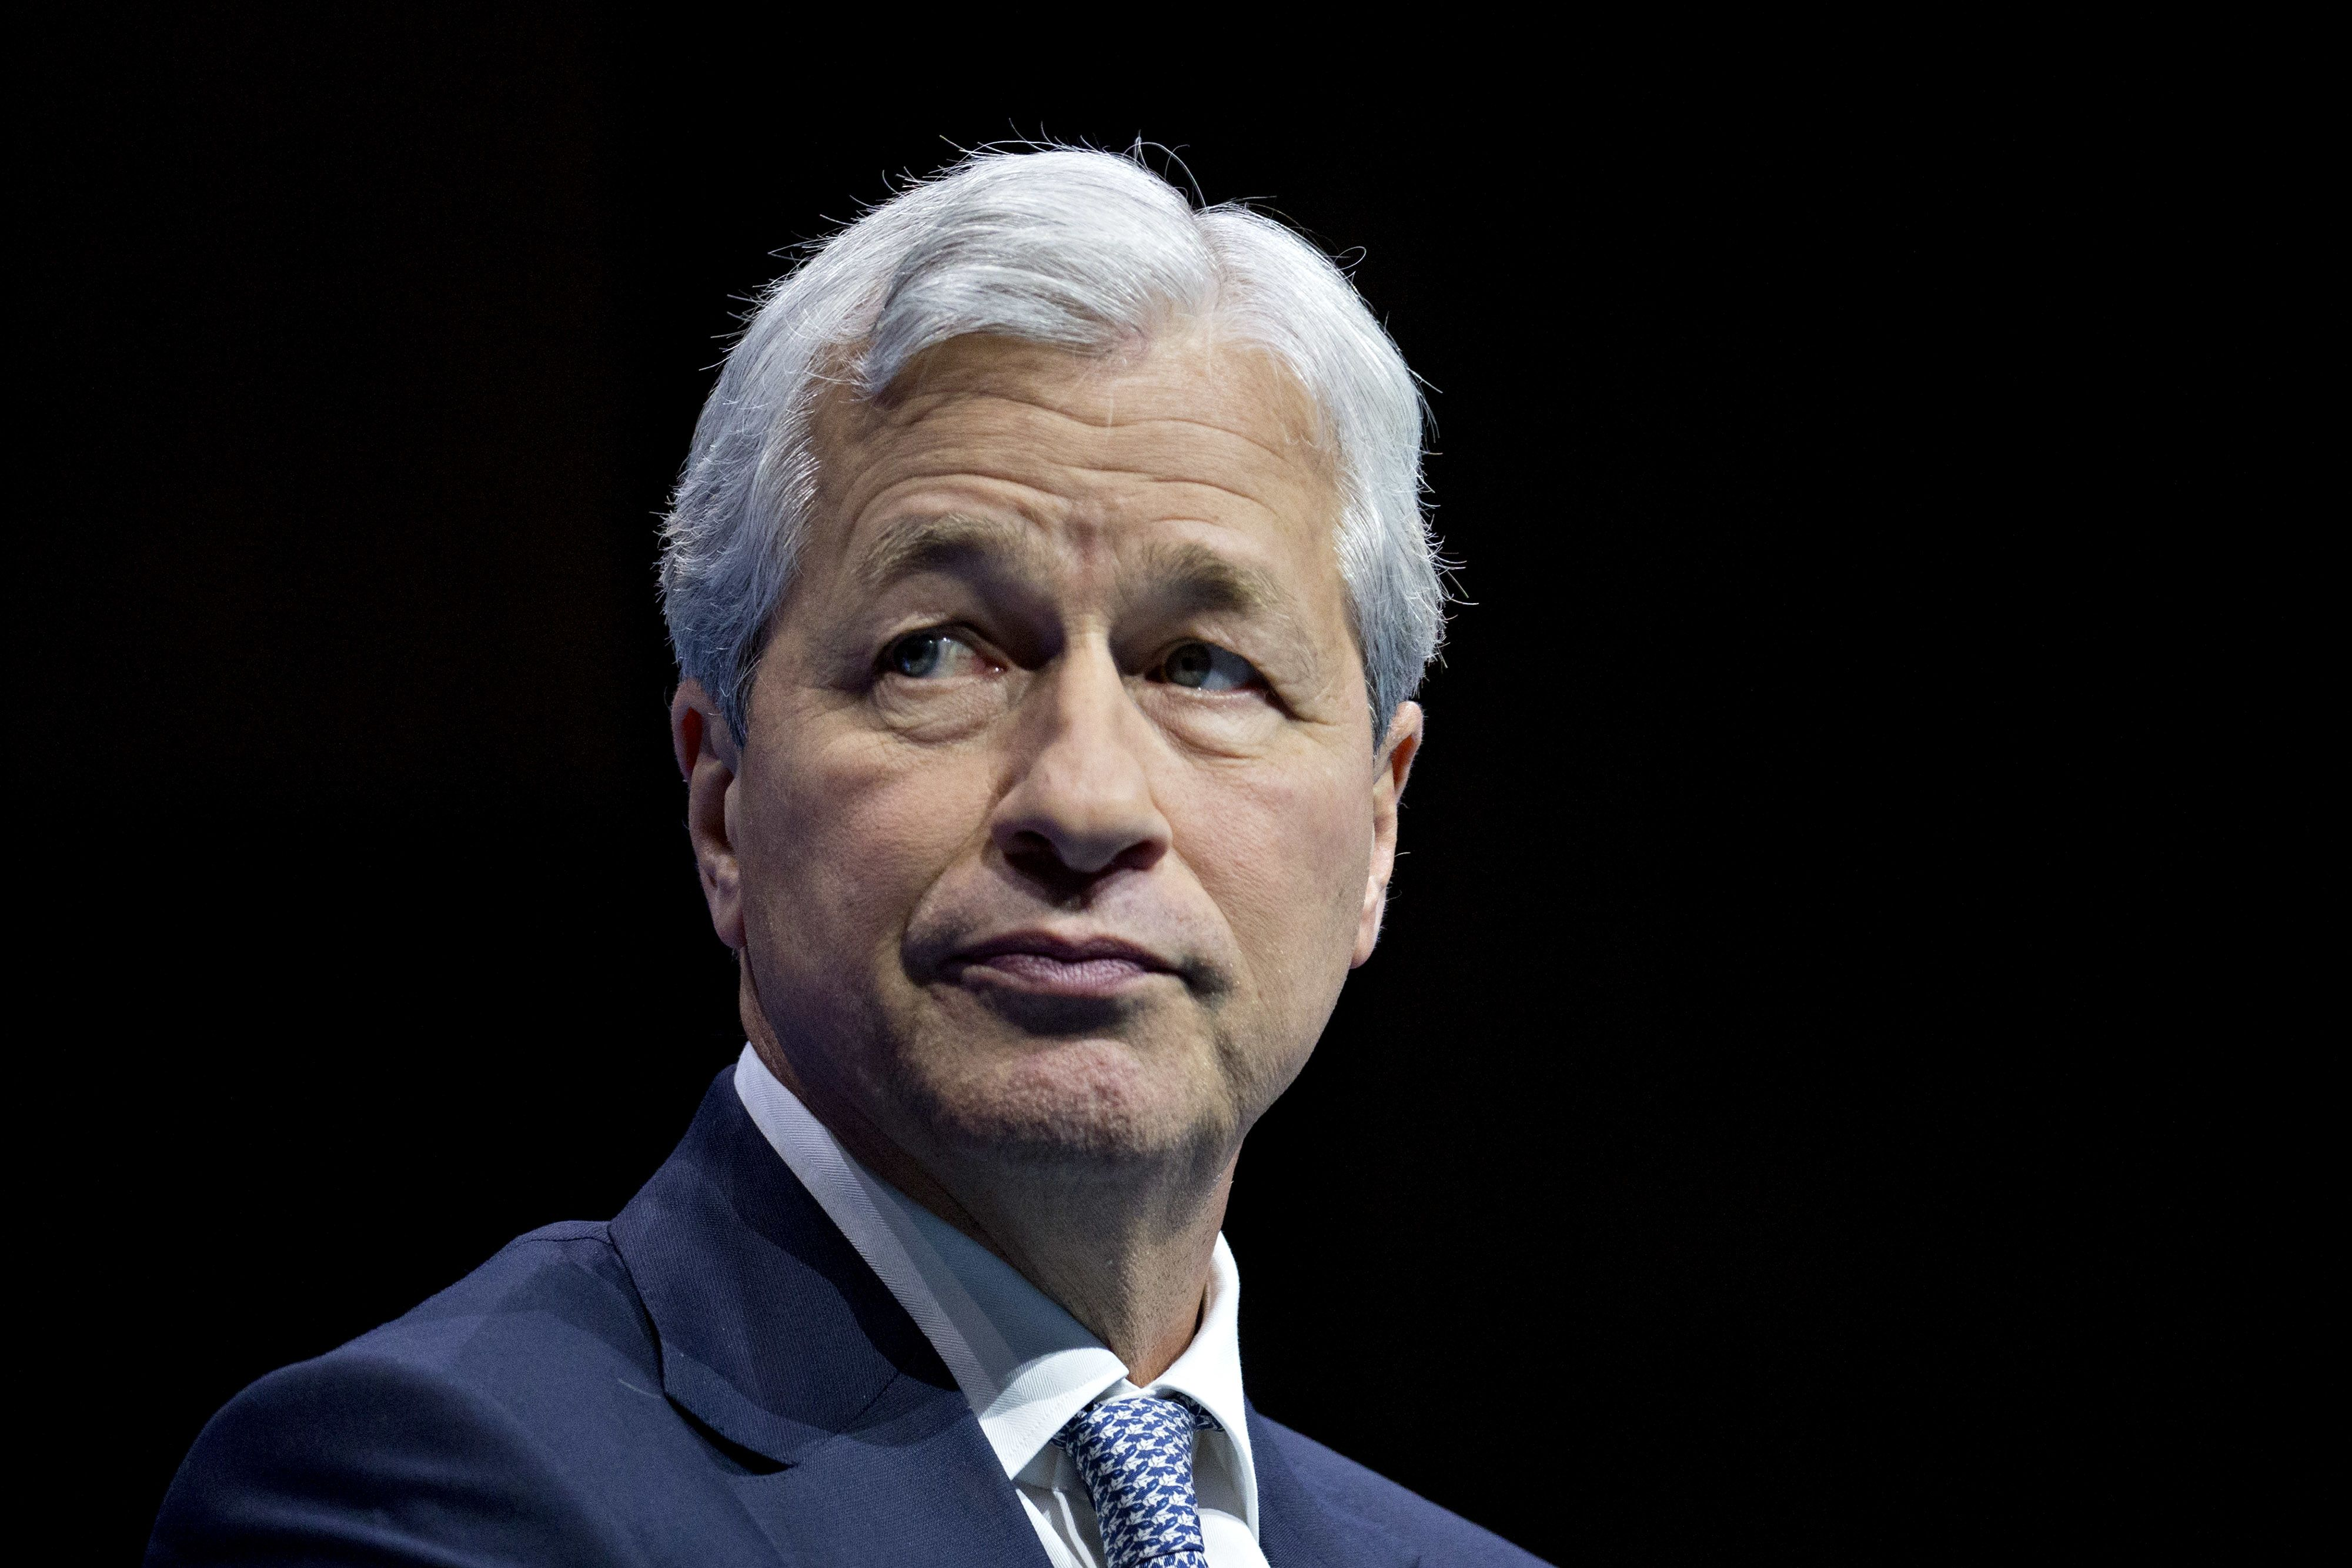 Jamie Dimon's worst fears for banks realized with Capital One hack